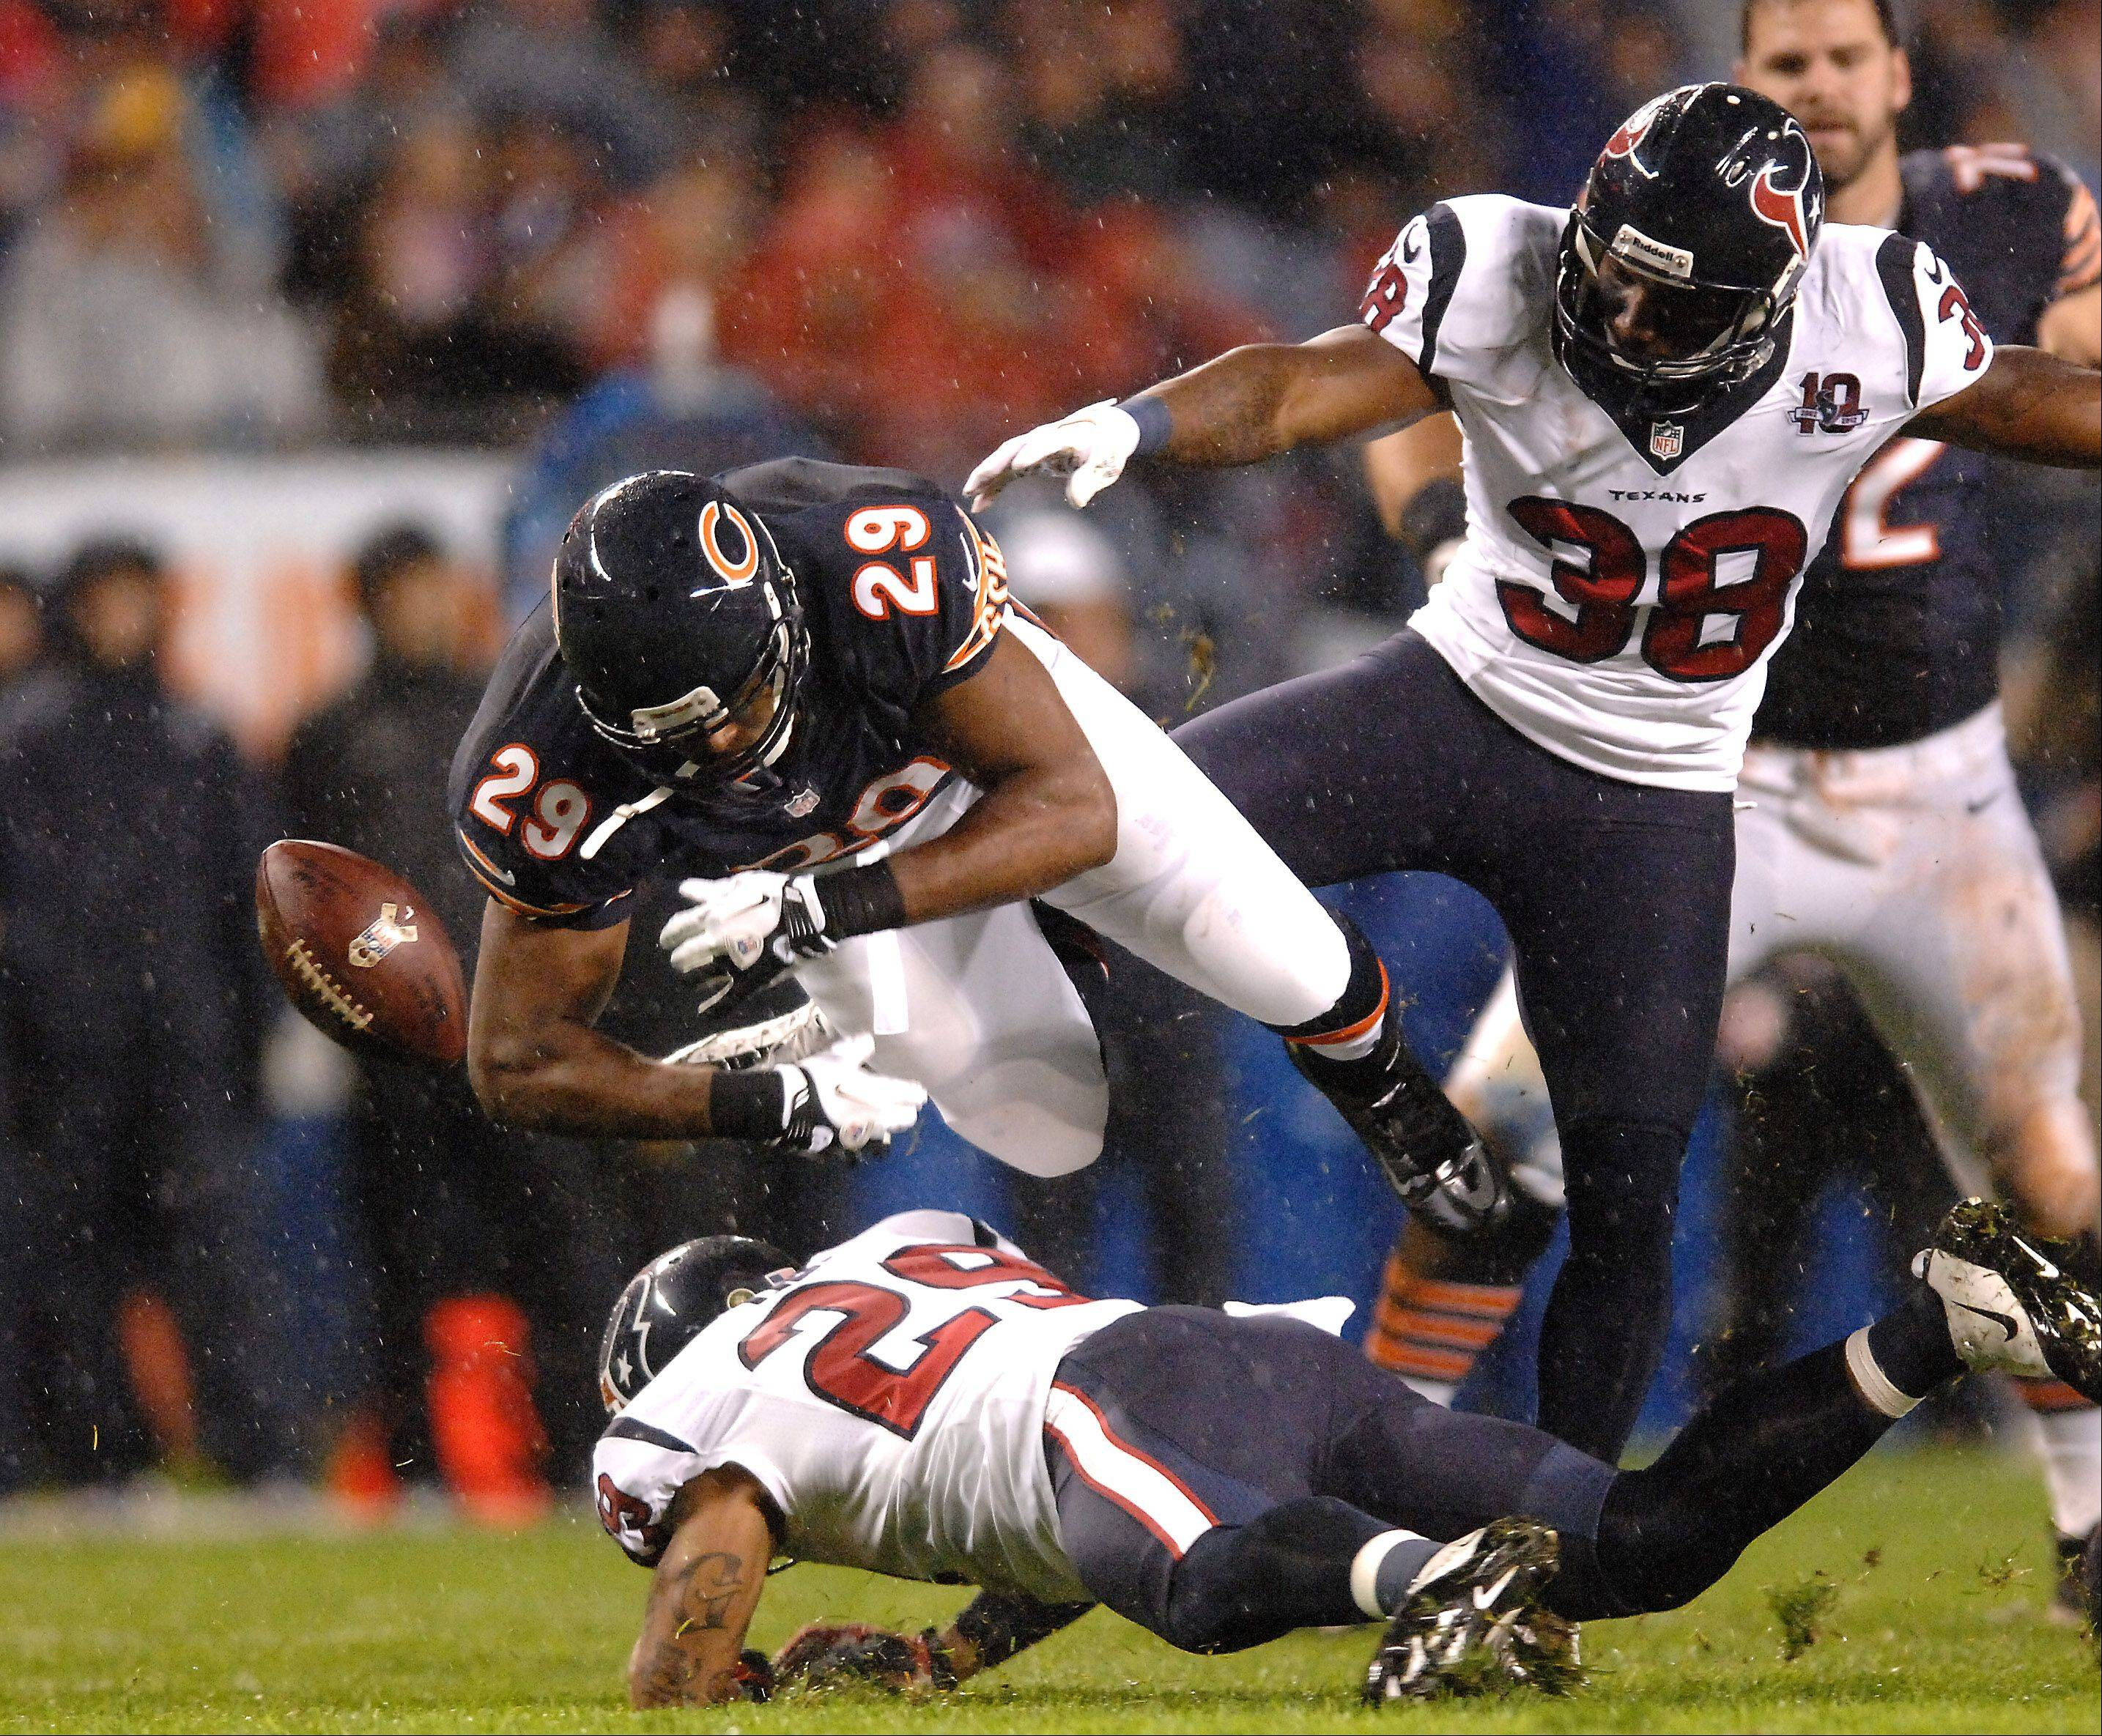 Chicago Bears running back Michael Bush (29) fumbles on a fourth down run in the first quarter against Houston Texans during Sunday's game at Soldier Field in Chicago.